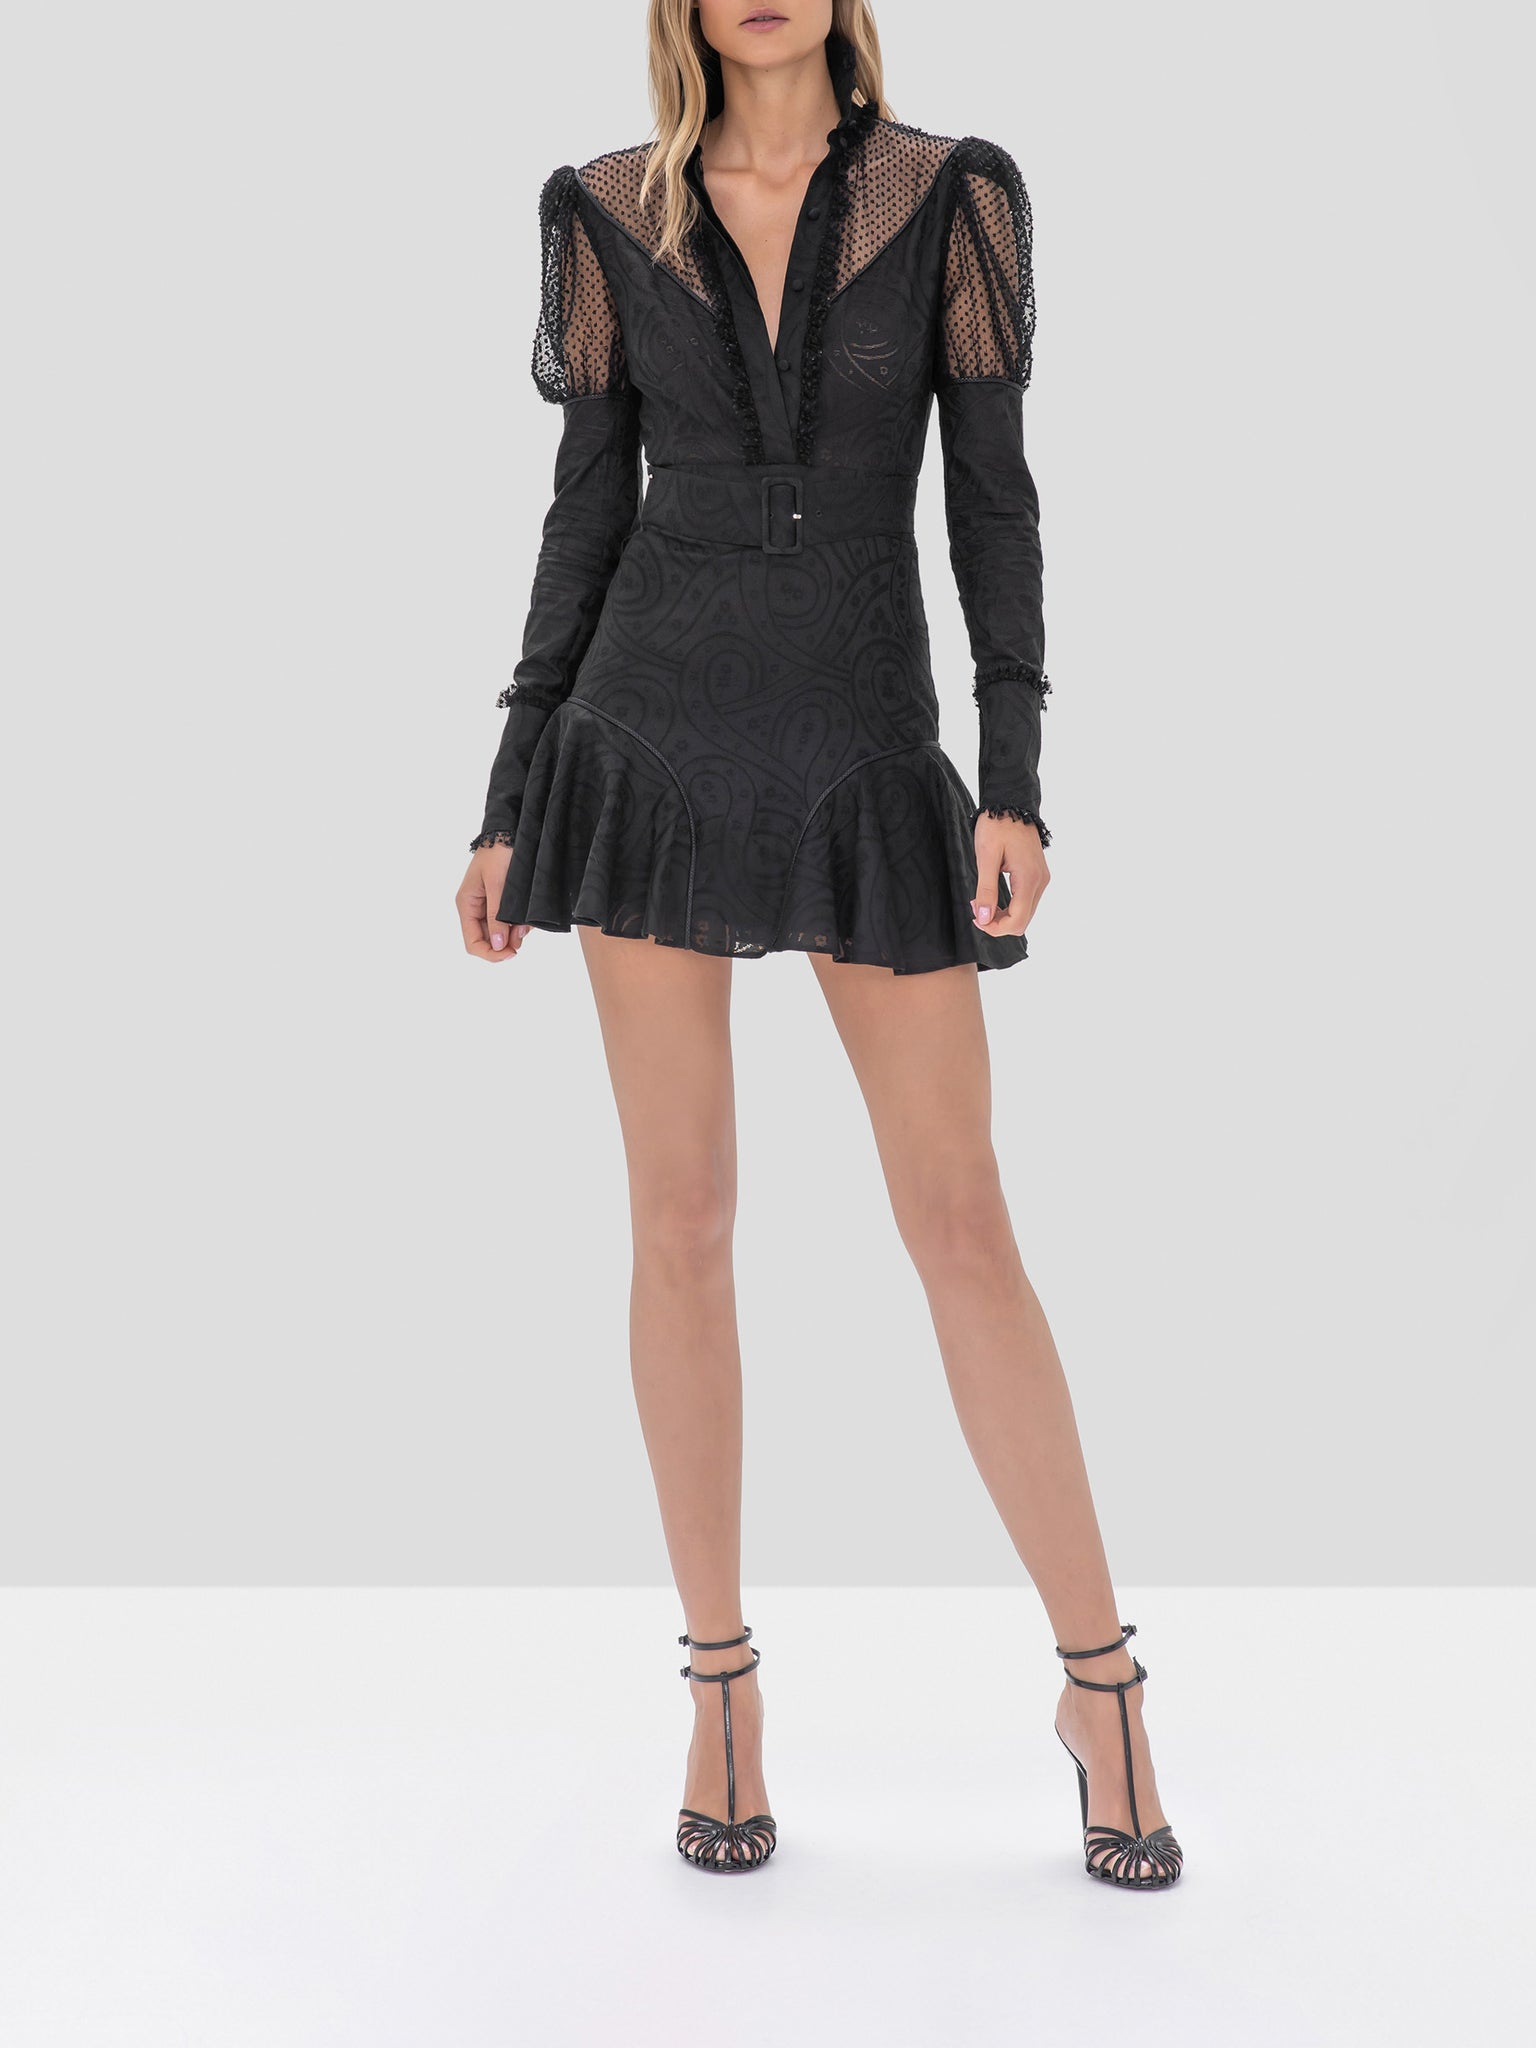 Alexis Madilyn Dress in Black from the Fall Winter 2019 Ready To Wear Collection